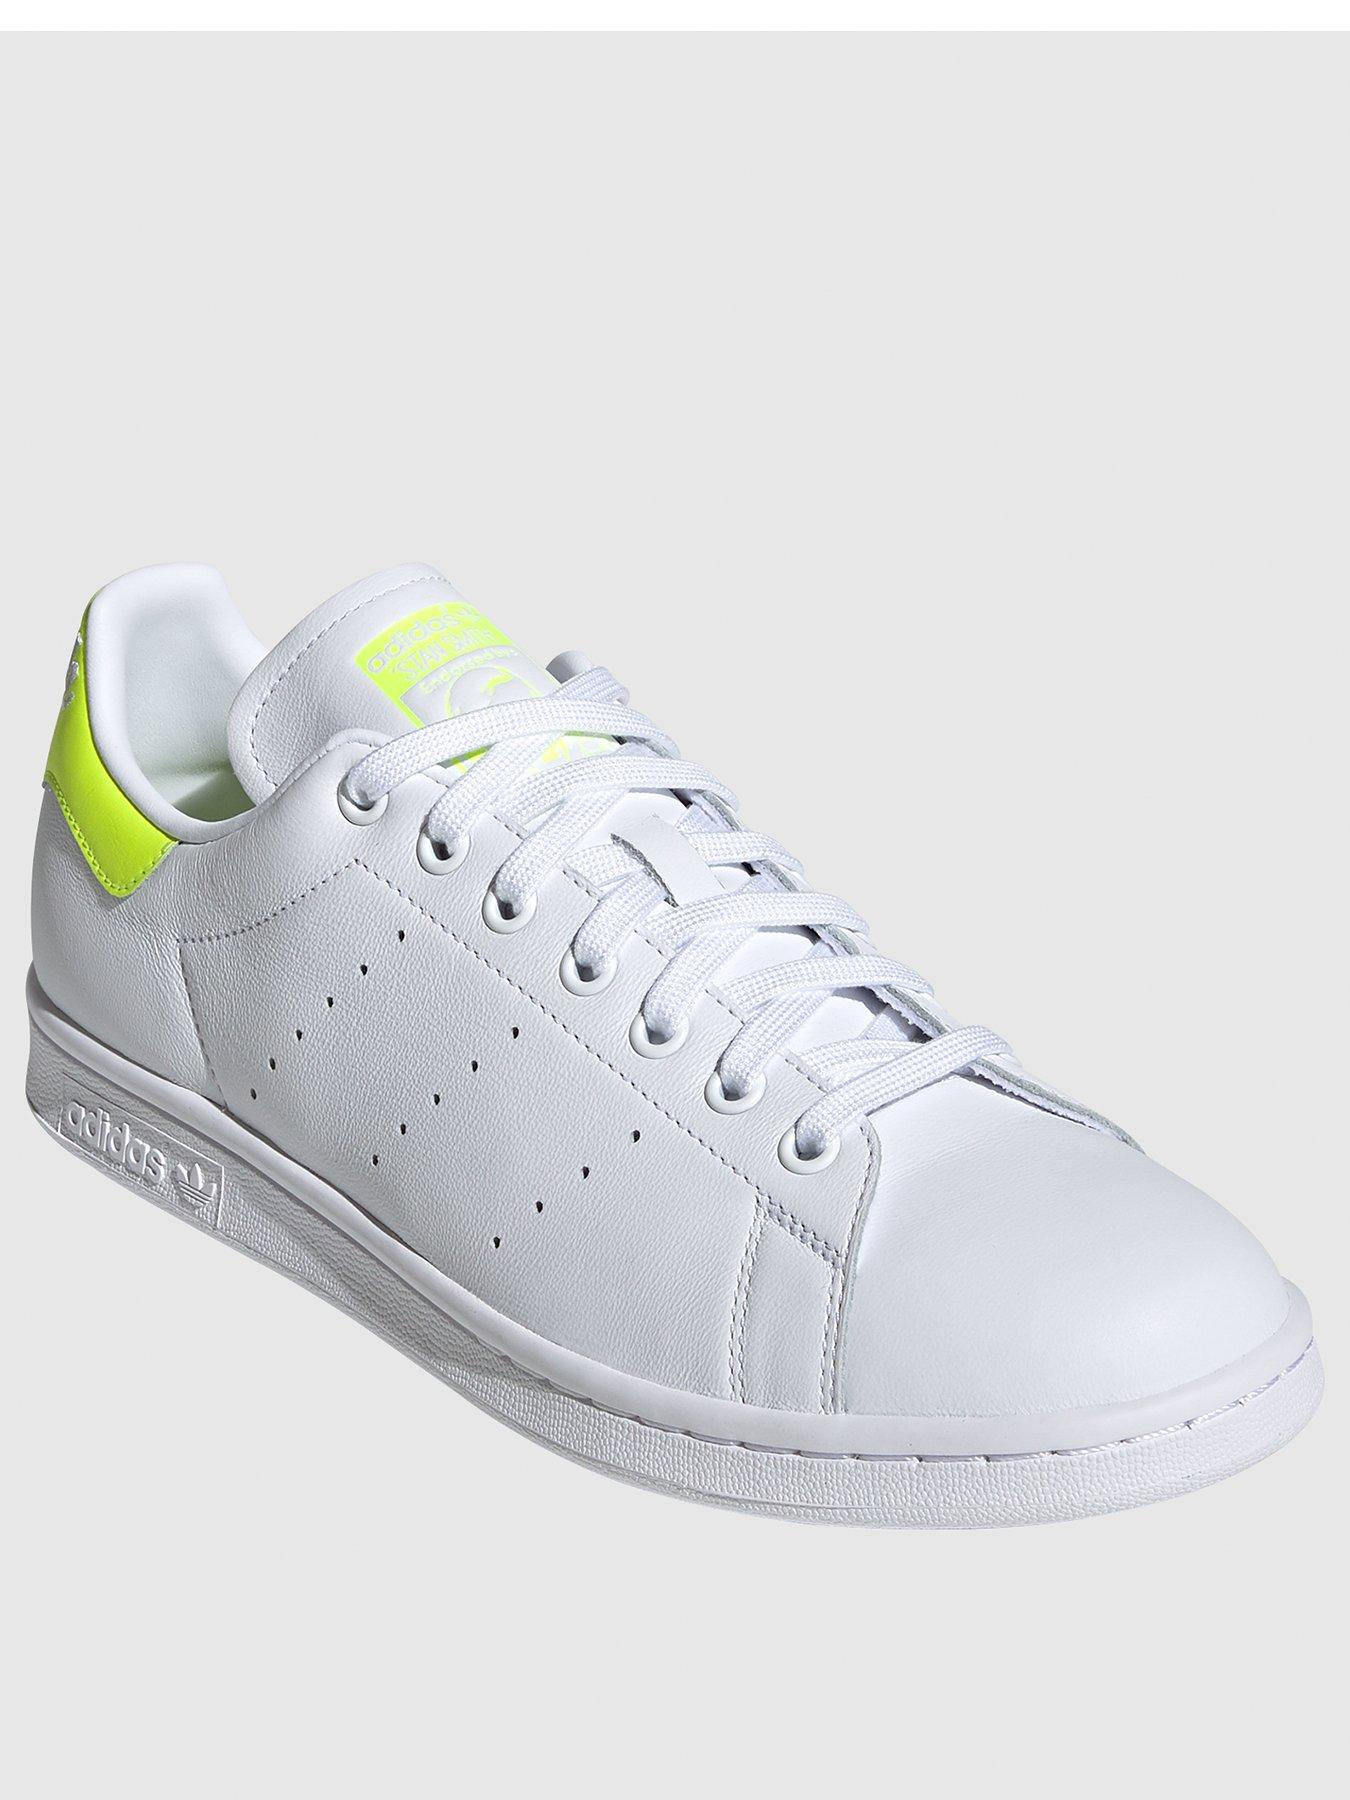 Womens adidas Trainers | Adidas Sports Shoes | Very.co.uk